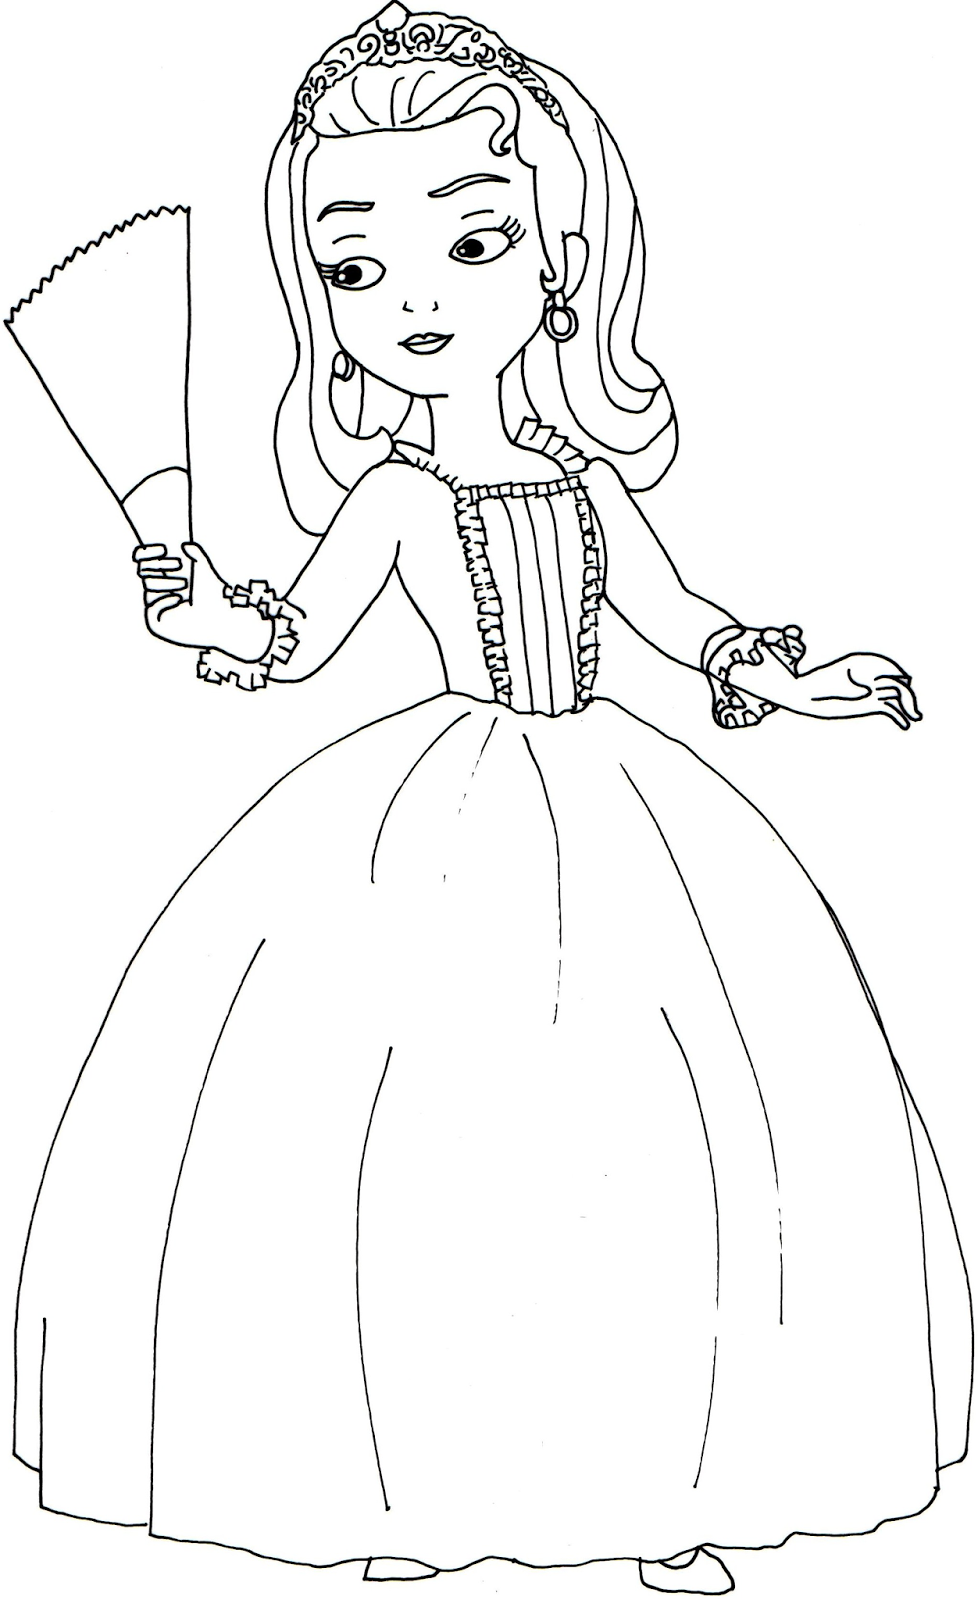 Sofia The First Coloring Pages Princess Amber Sofia The First Coloring Page Princess Coloring Pages Mermaid Coloring Pages Disney Coloring Pages